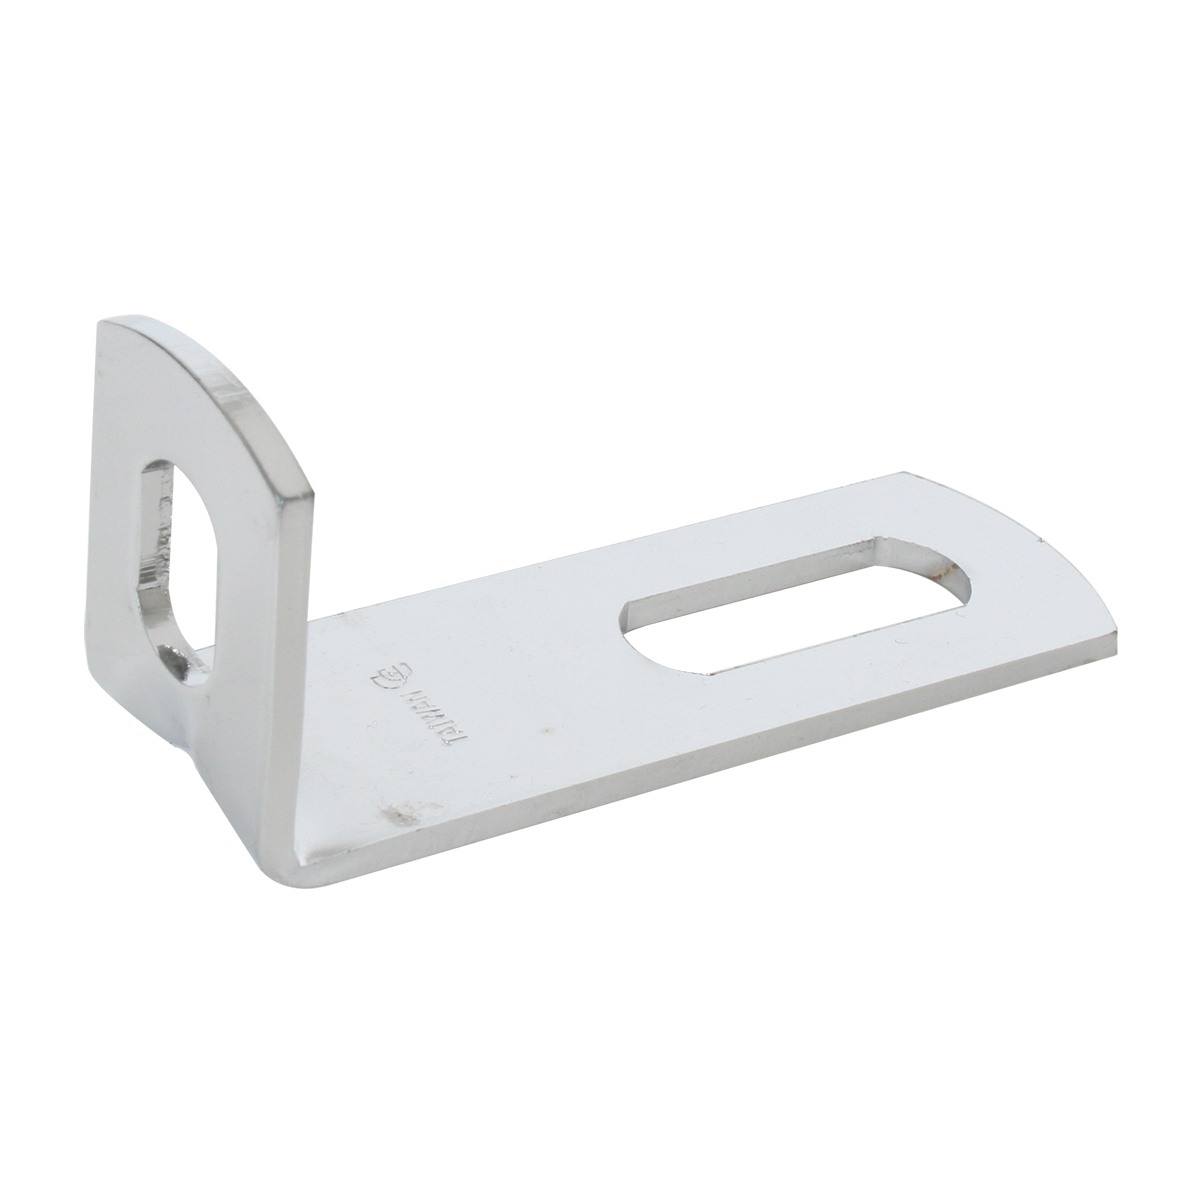 L-Bracket (3-5/16″ x 1.5″ x 1.25″) for Mirror